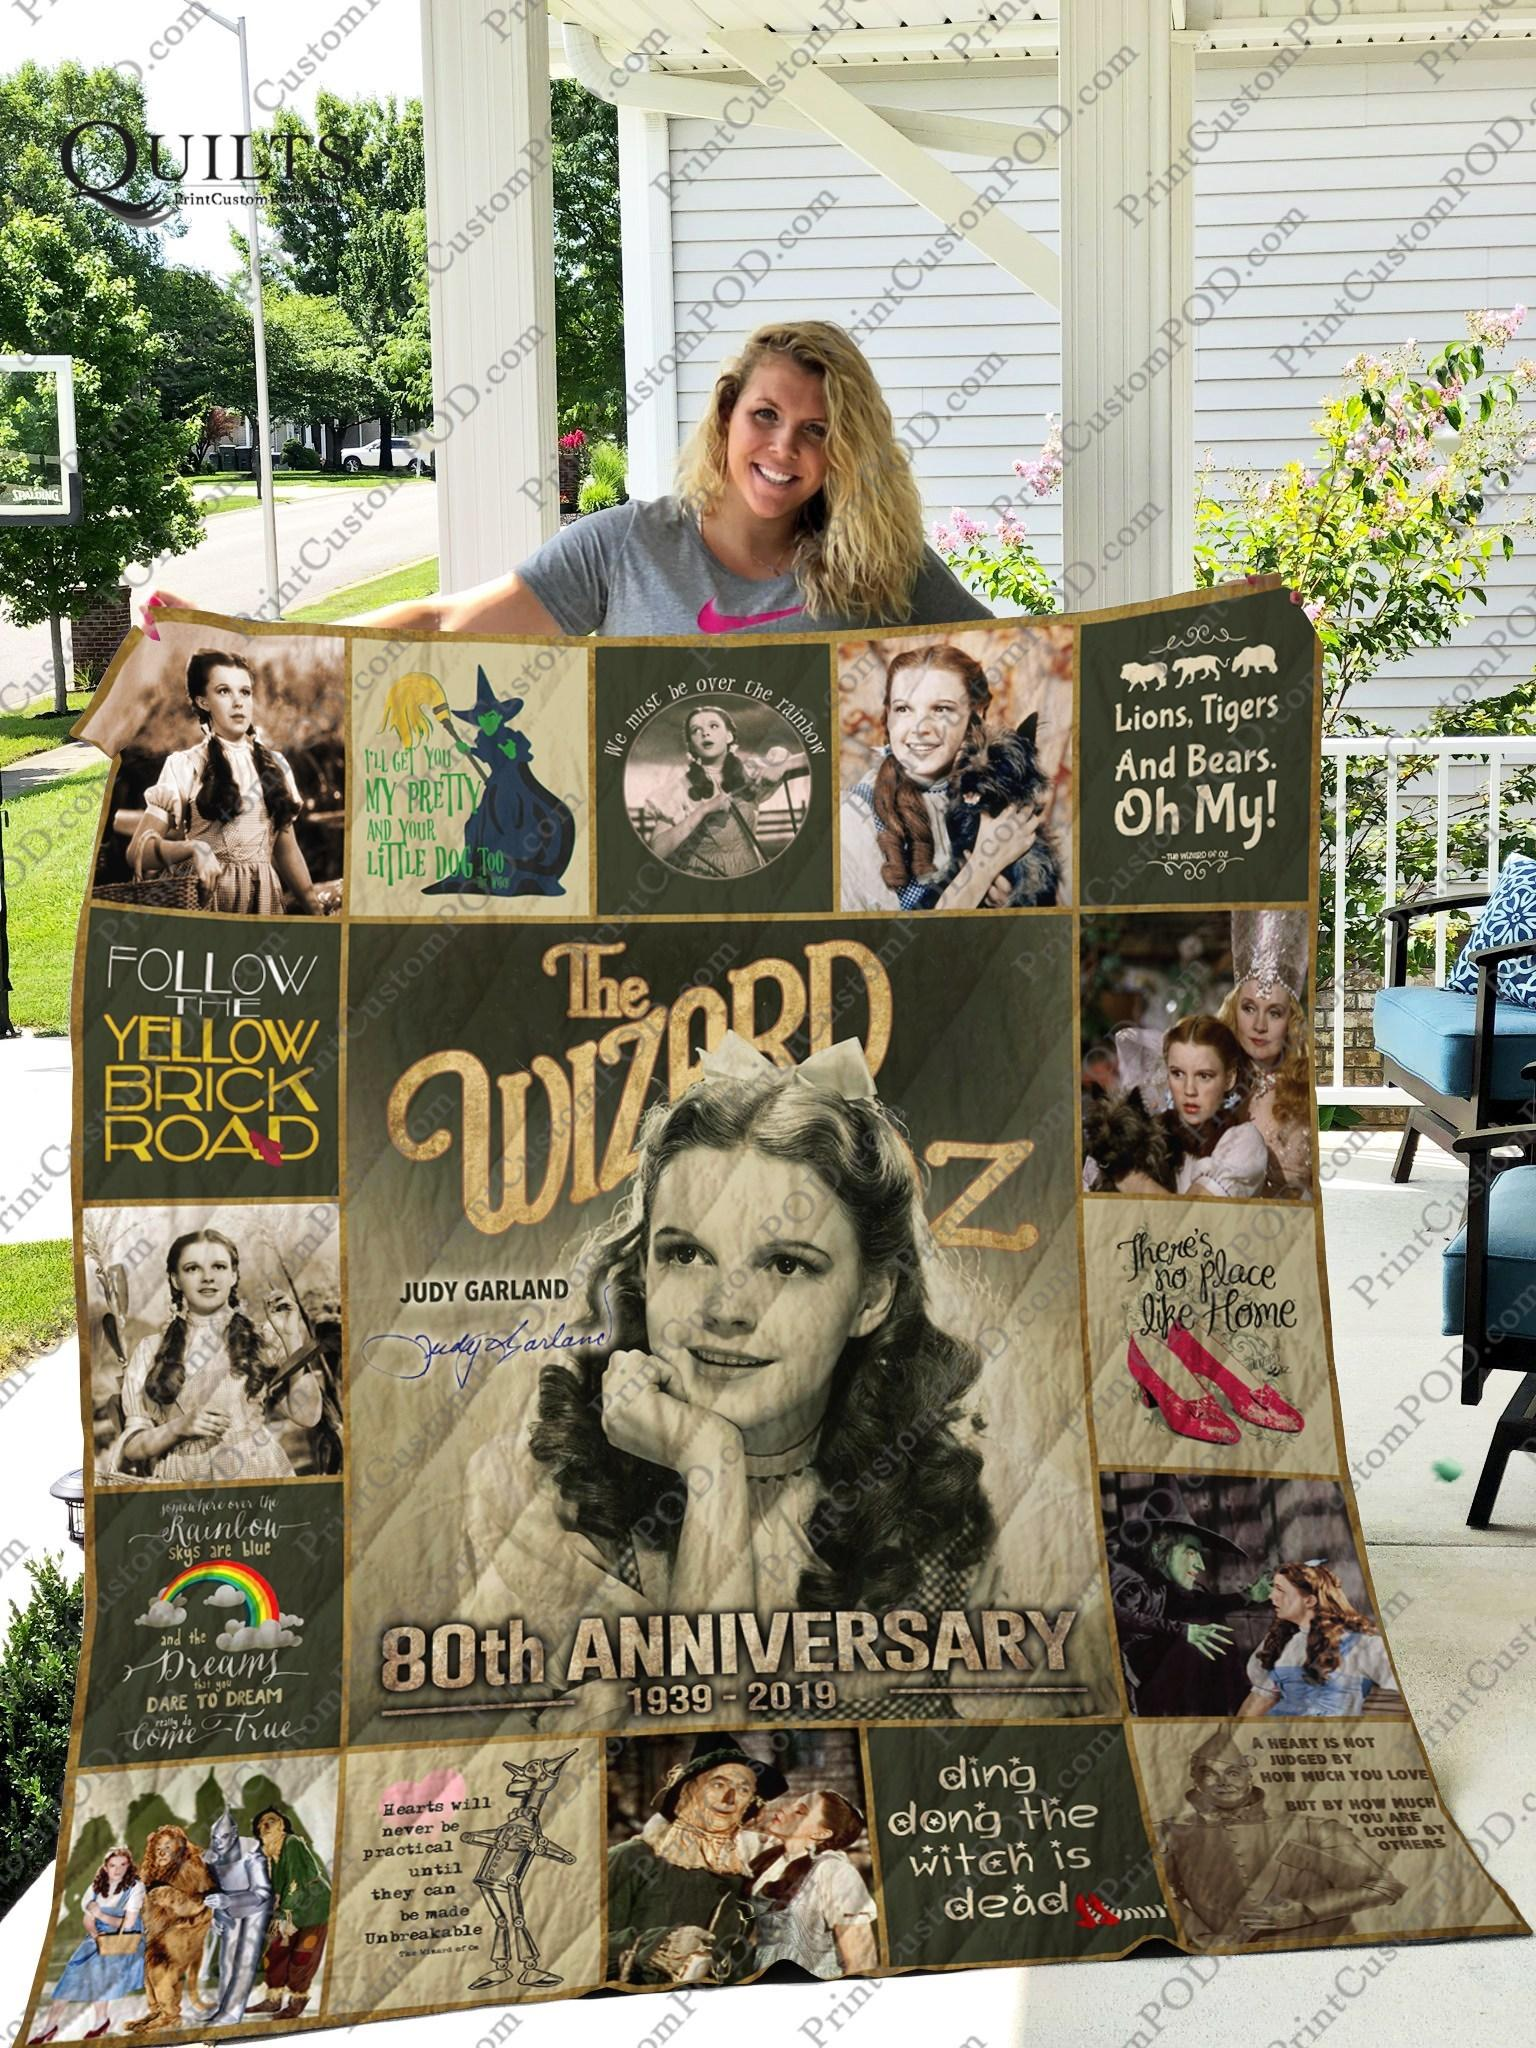 The wizard of oz judy garland 80th anniversary quilt - maria